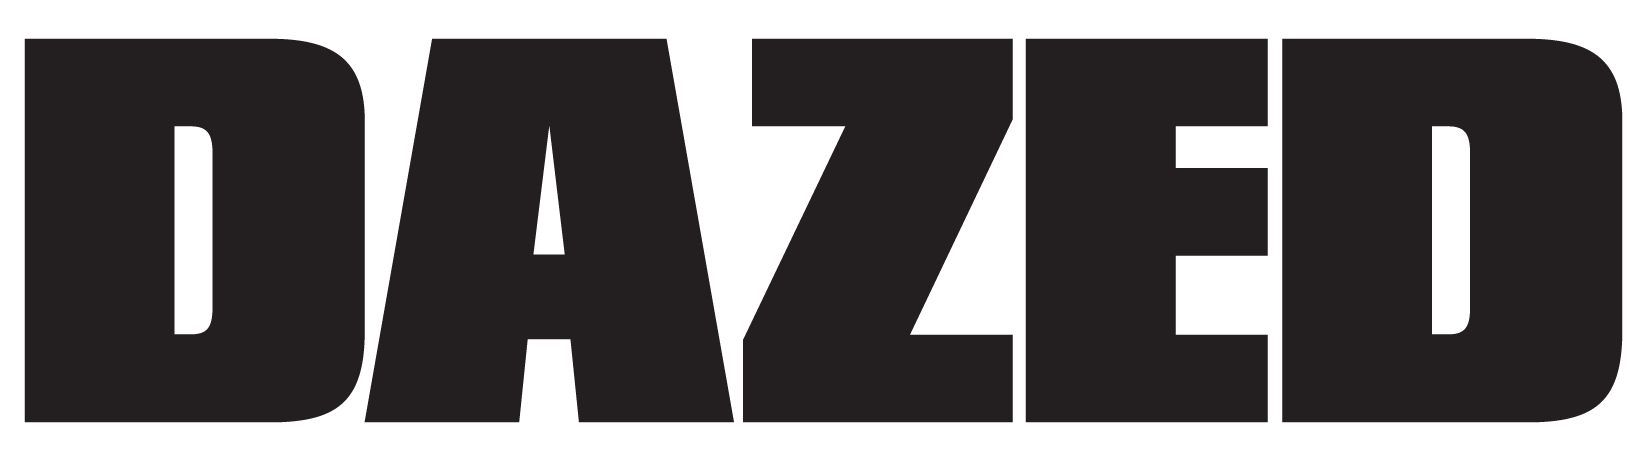 dazed-and-confused-logo.png